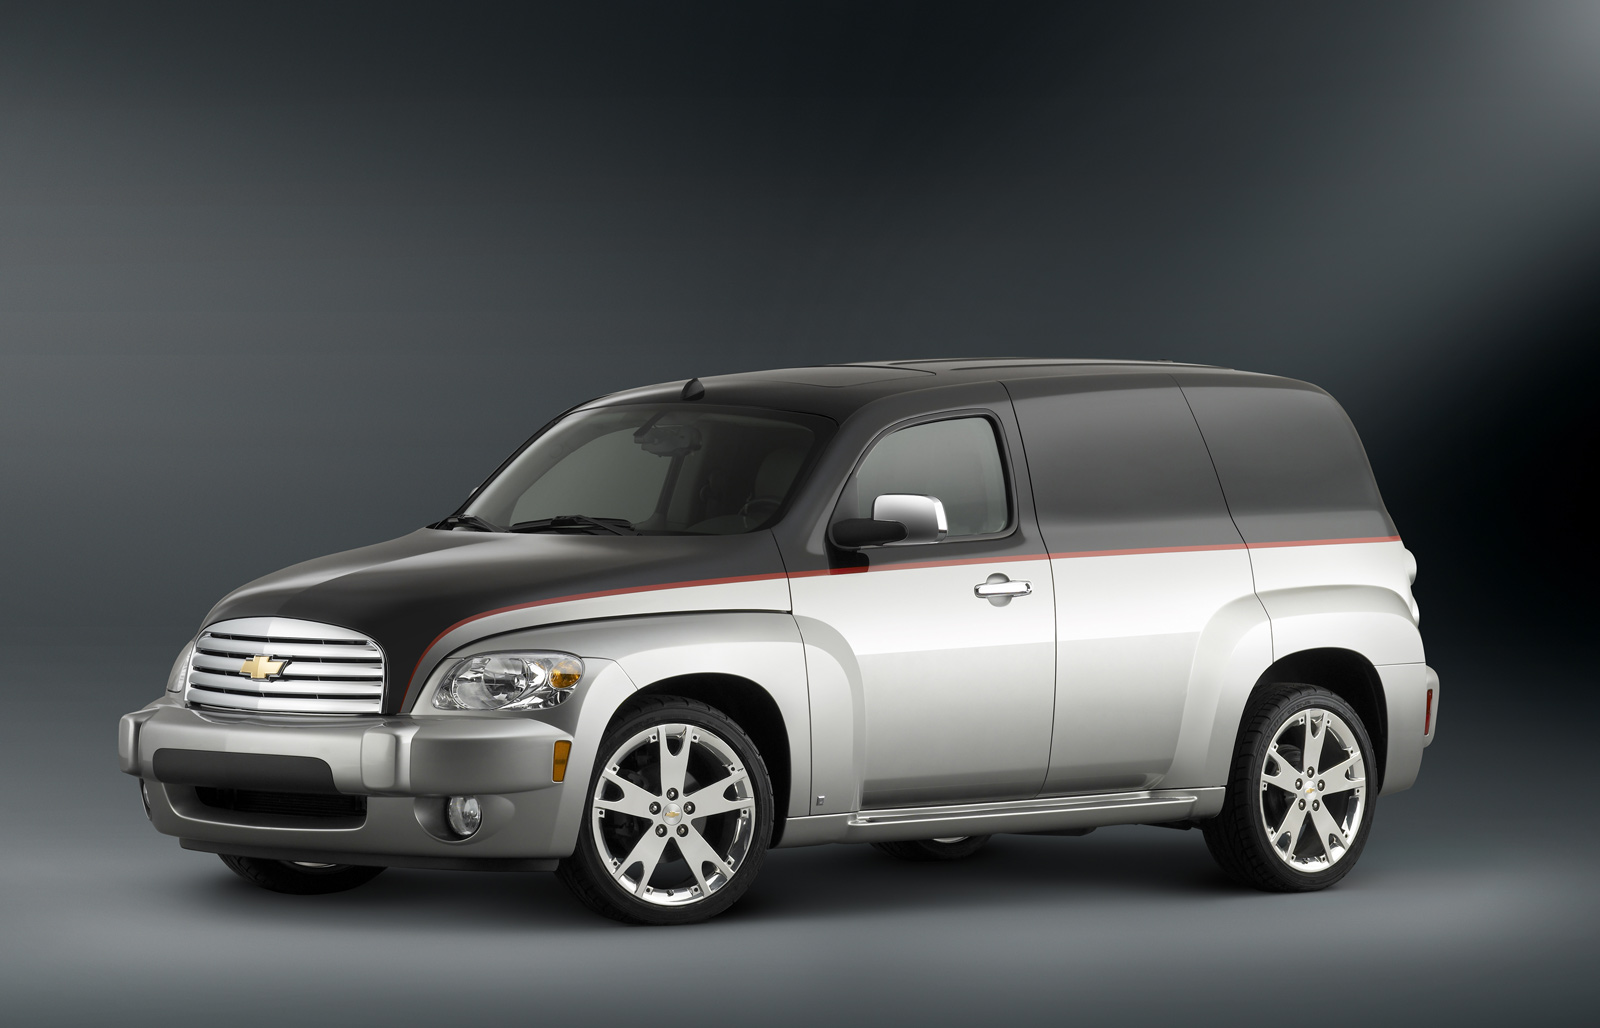 2007 All Chevy Chevrolet Hhr Specs Pictures Information And